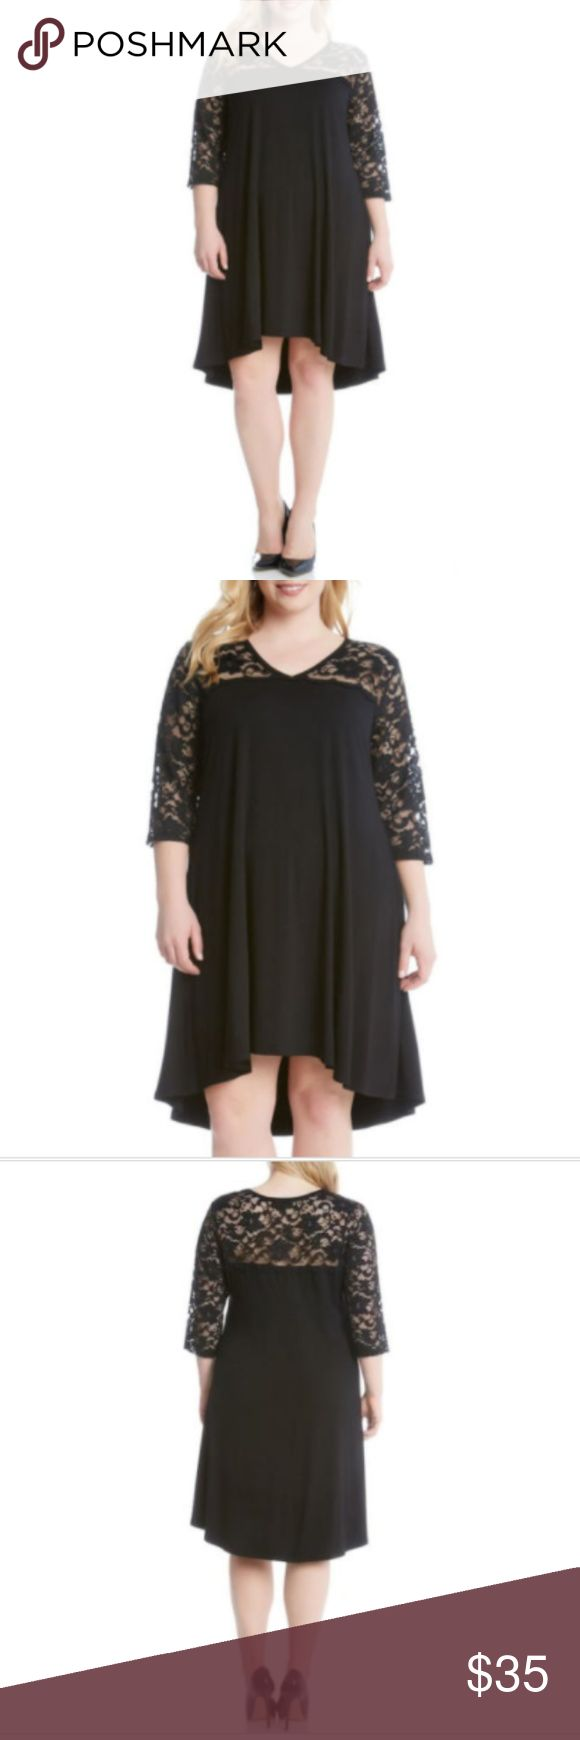 NWT Karen Kane Black Lace Dress Plus Size 1X Karen Kane Lace Yoke Trapeze Dress Plus Size 1X NWT Black MSRP $87 Romance made easy: A soft and comfortable jersey dress frames the face with sheer floral lace while the swingy, elliptical cut moves gracefully with every step. Slips on over head V-neck Sheer three-quarter sleeves Unlined Made in the USA Karen Kane Dresses